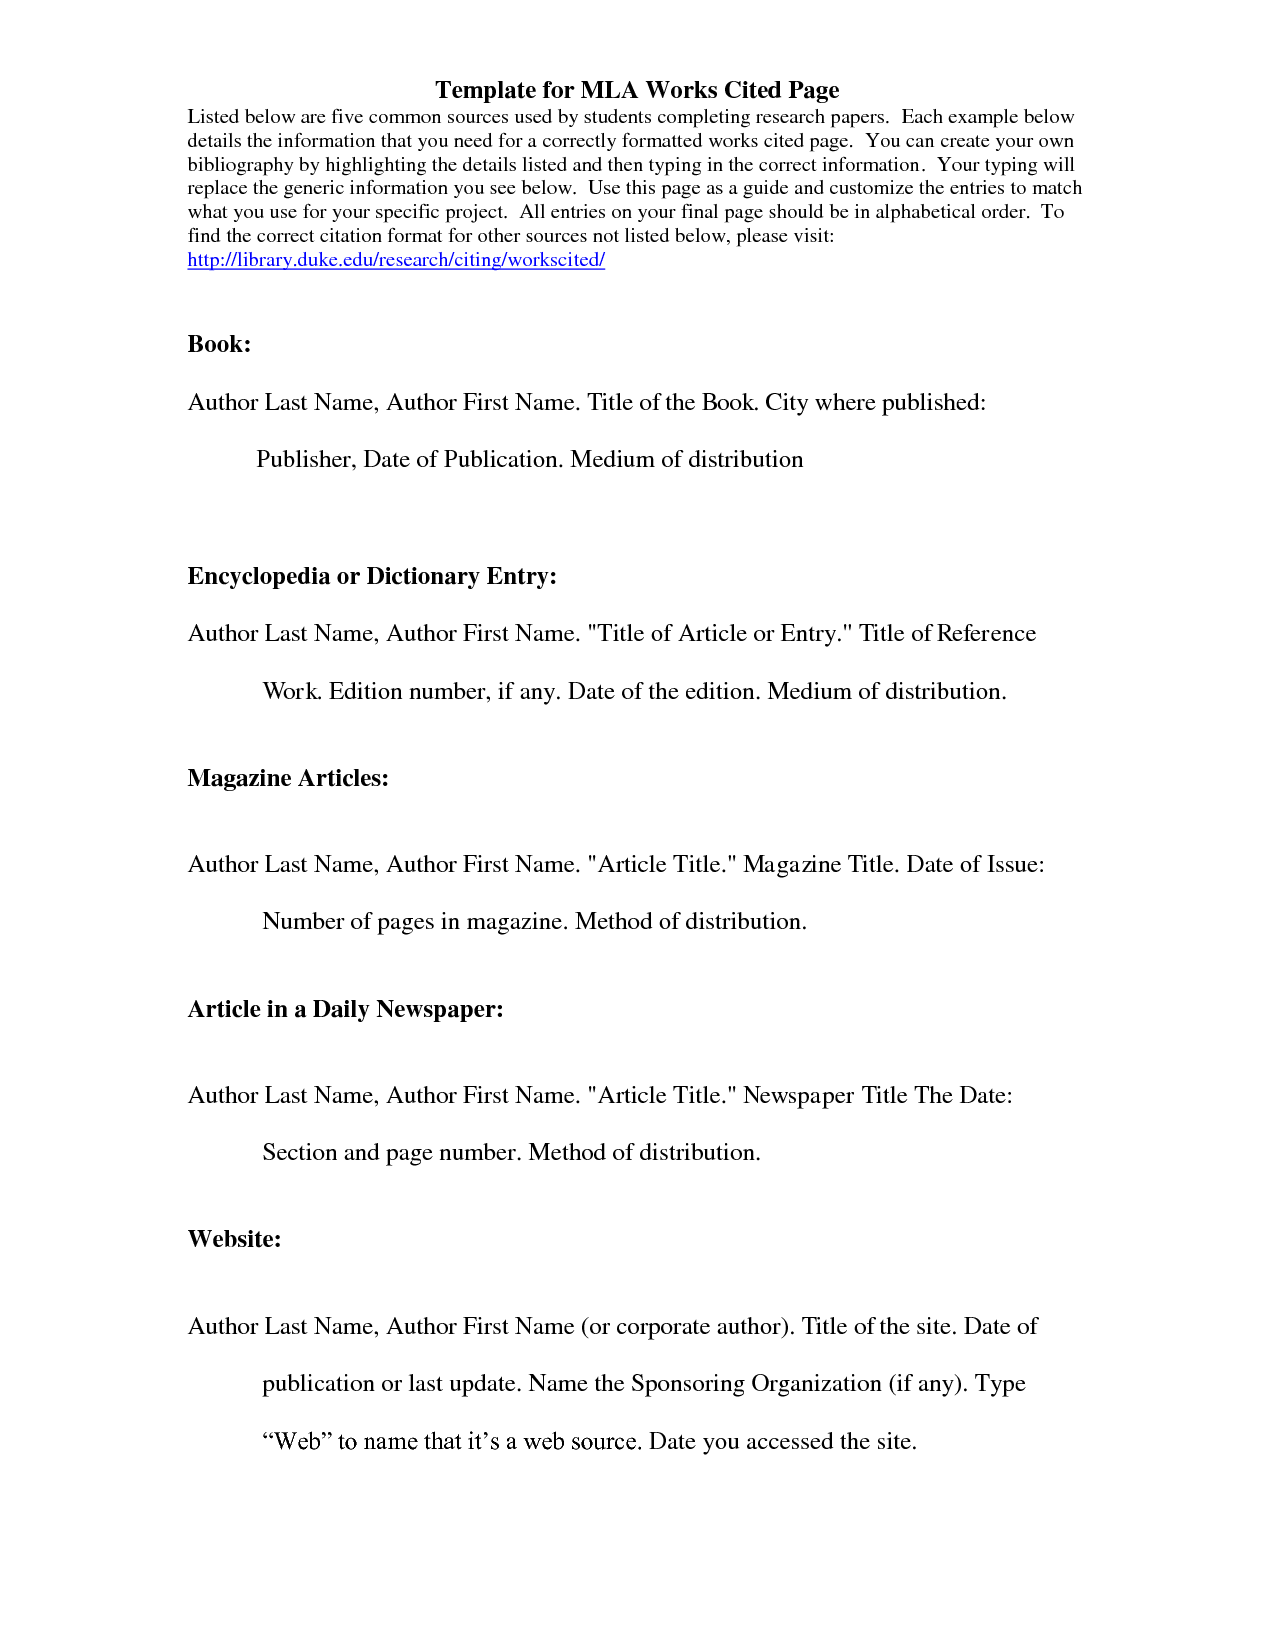 Mla Citation Template  Template For Mla Works Cited Page  School